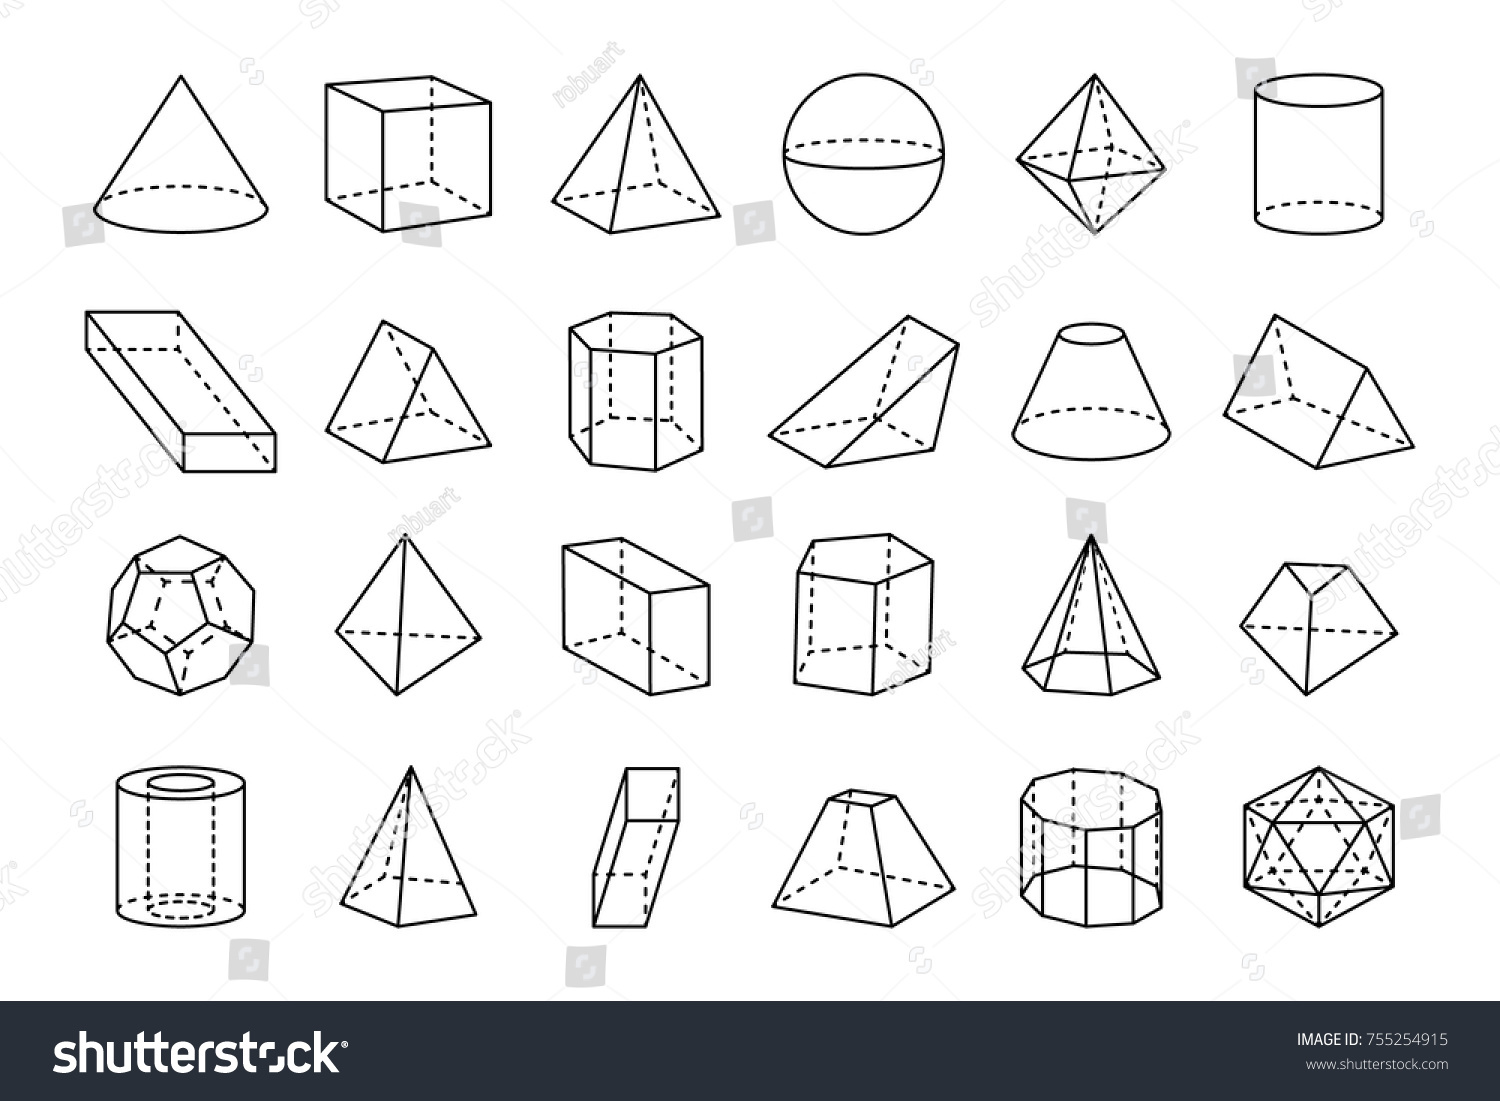 Collection Three Dimensional Geometric Shapes Sketches Stock Vector